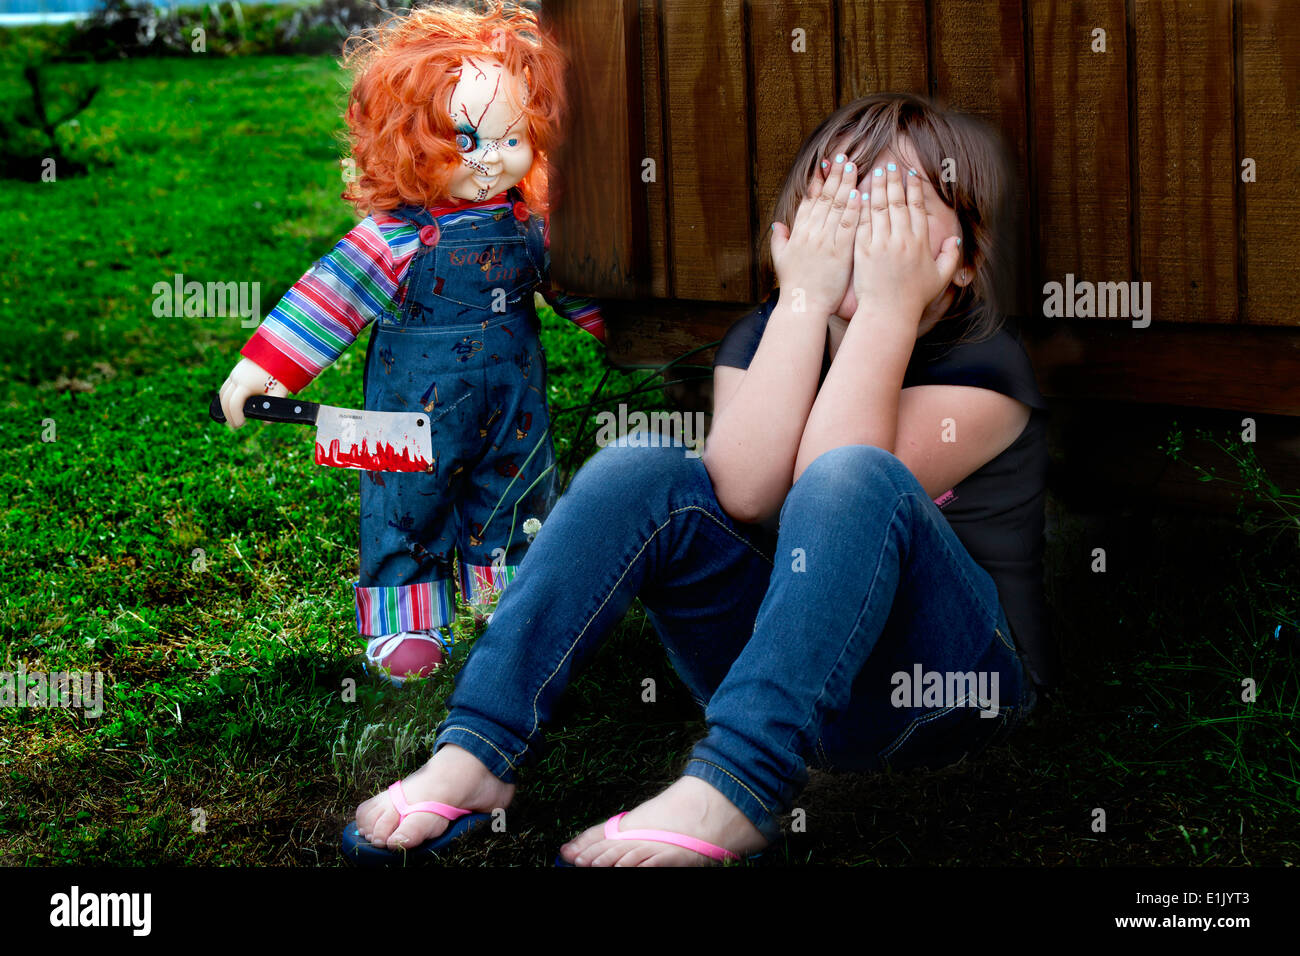 chucky and little girl stock photo 69873107 alamy